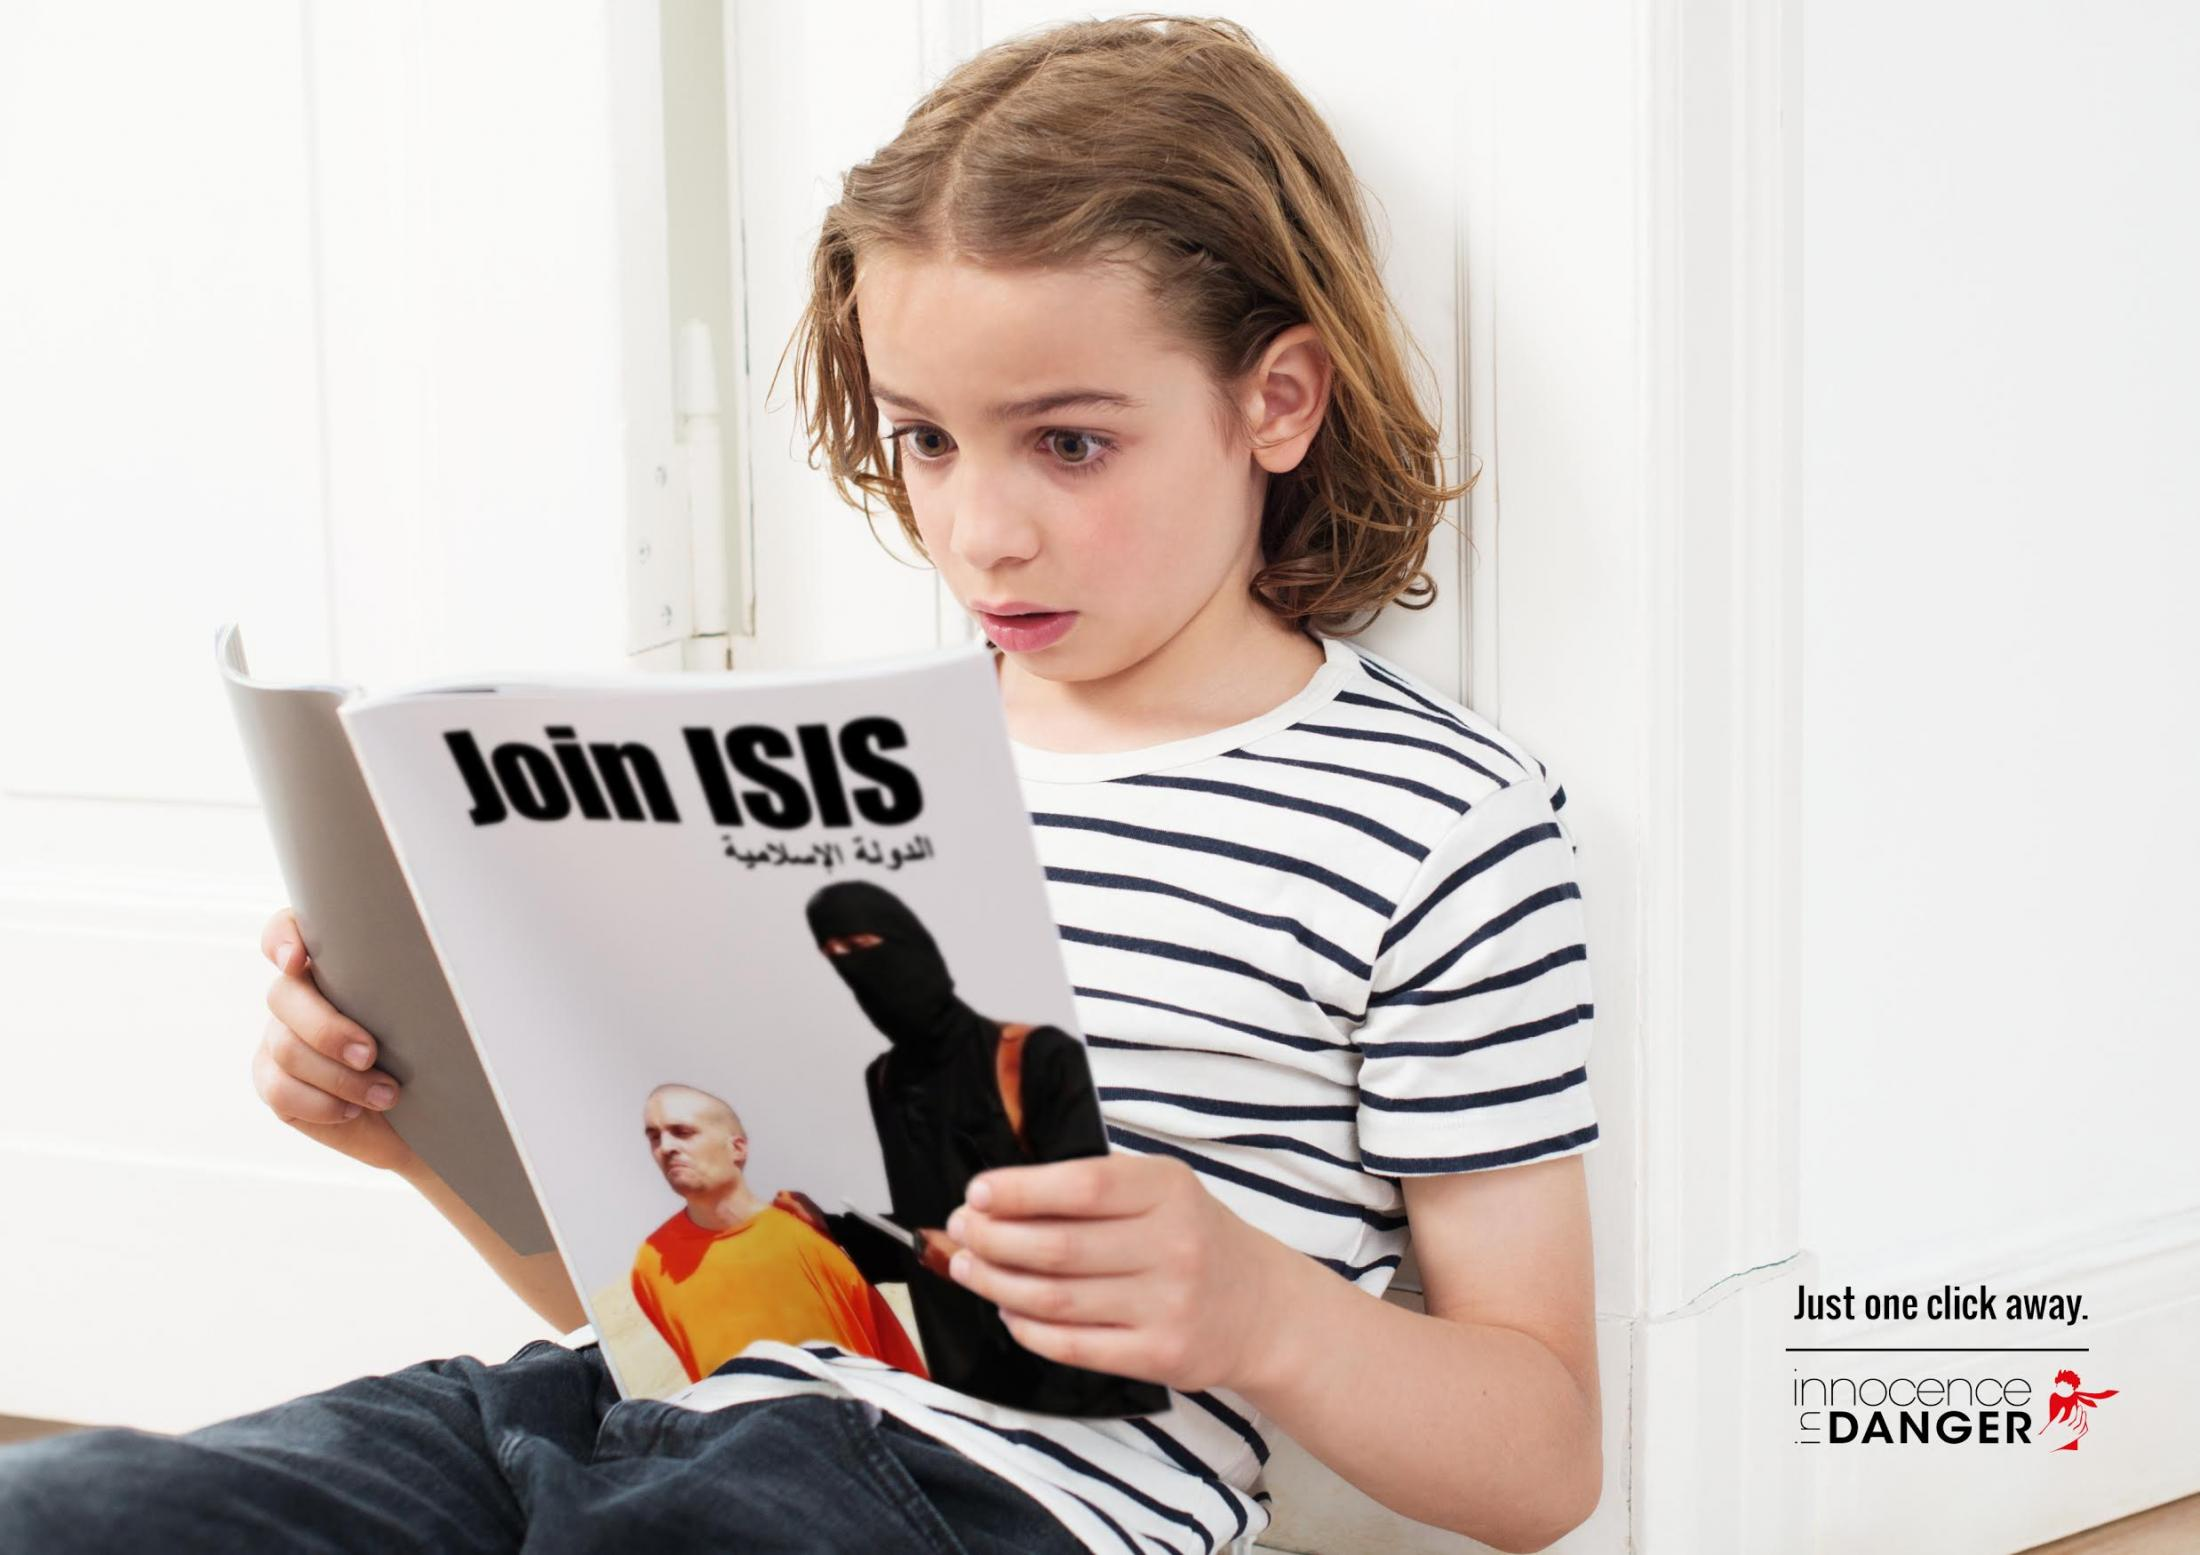 Innocence In Danger Print Advert By Glow: Just one click away, ISIS | Ads of the World™